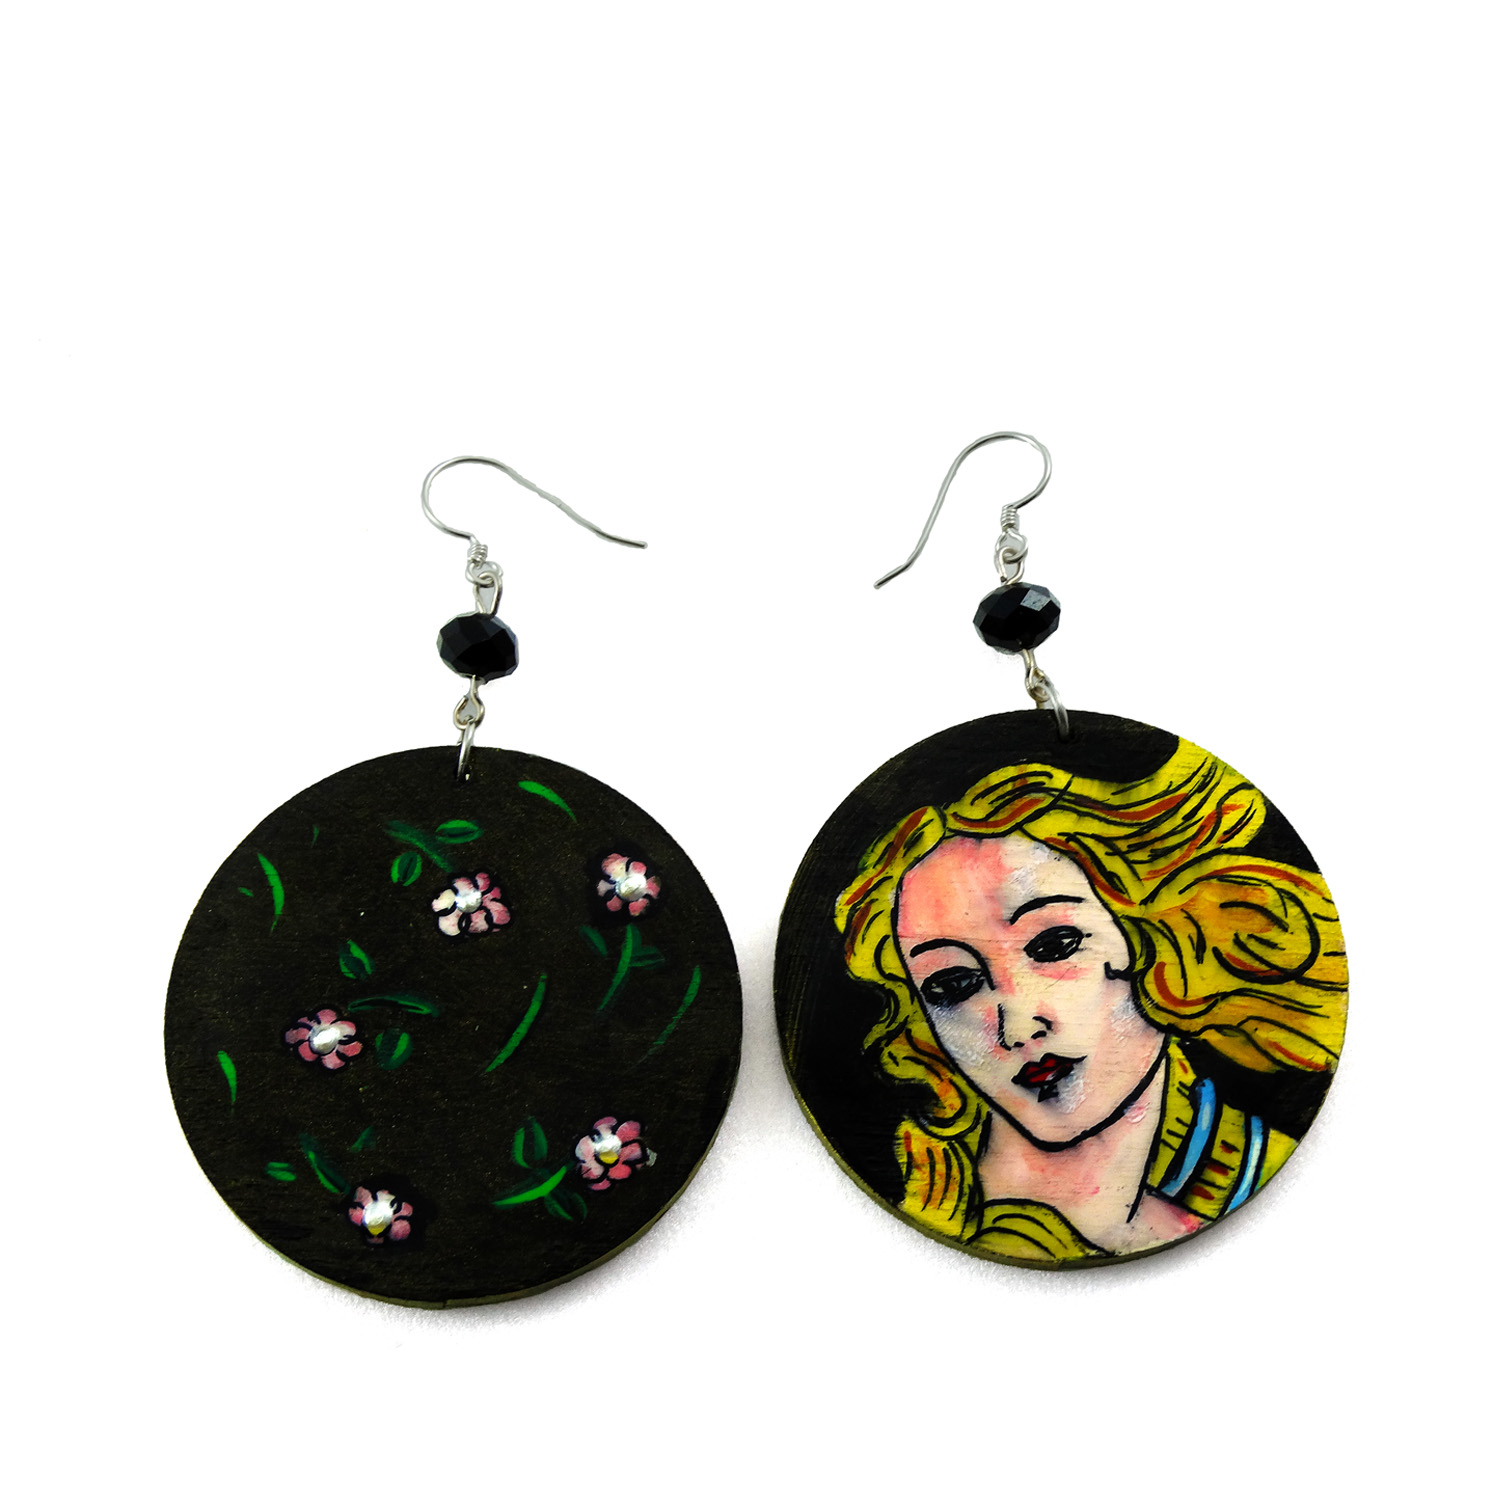 Hand-painted earrings - The Birth of Venus by Botticelli